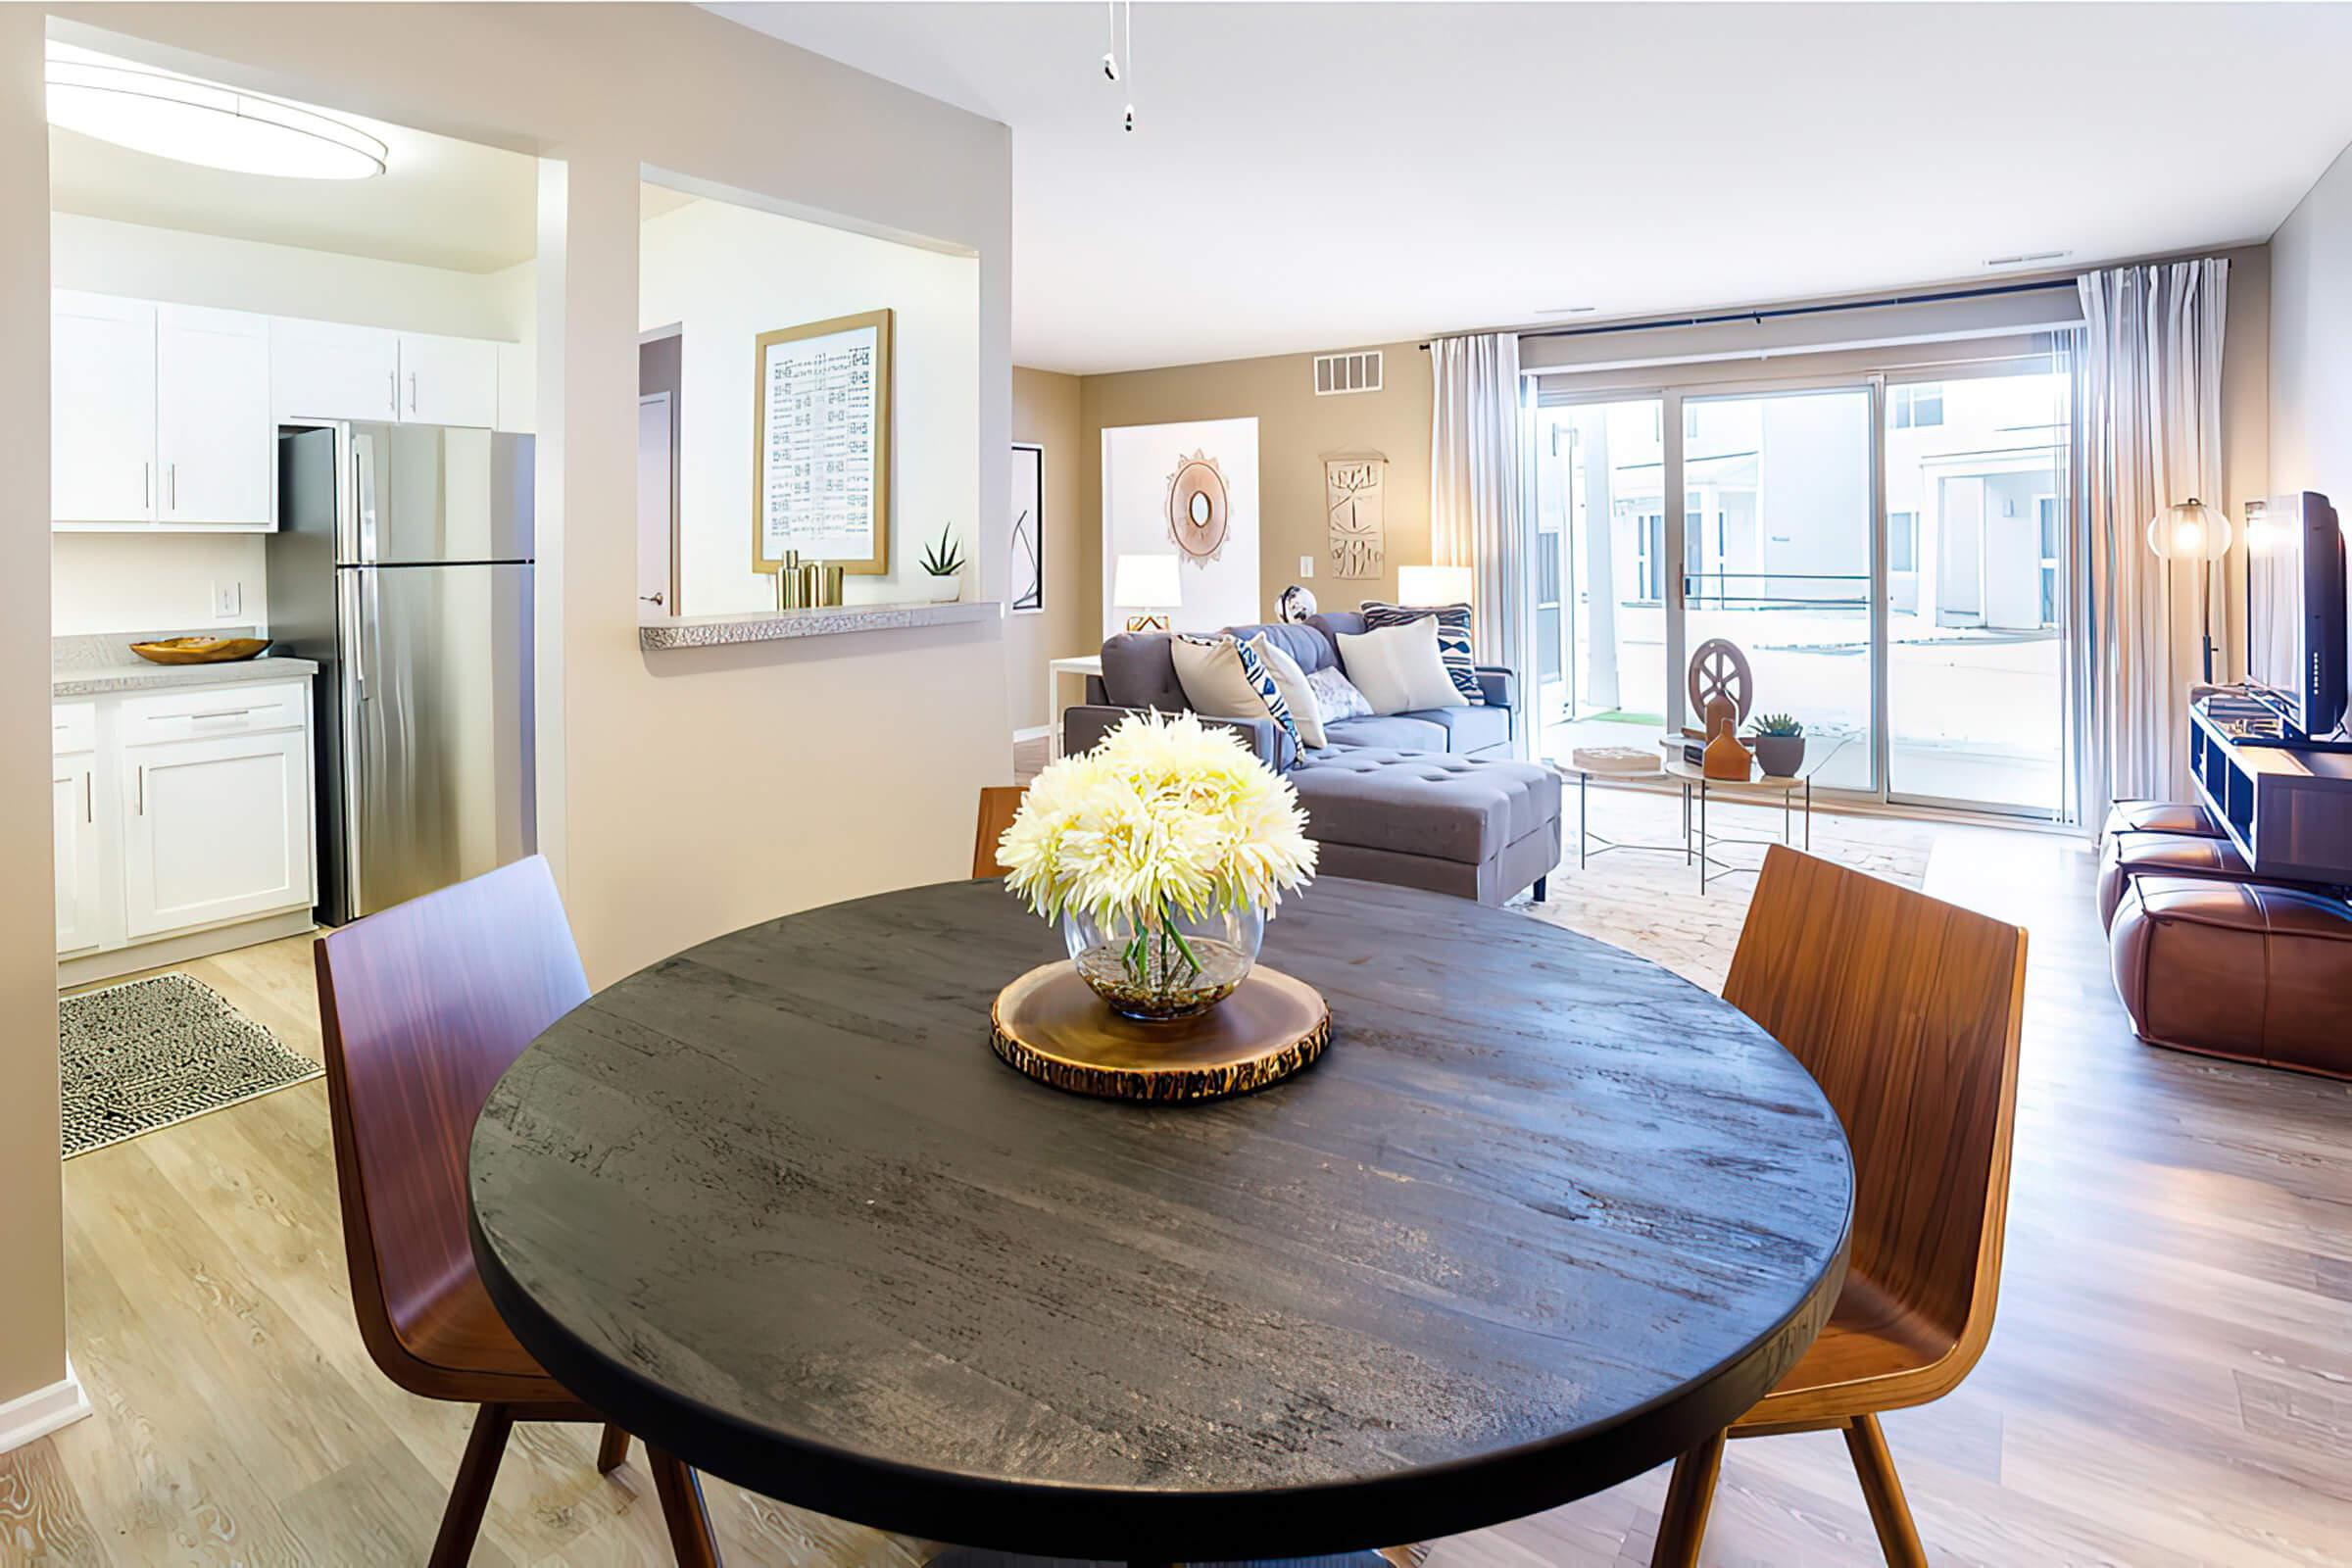 a living room filled with furniture and vase on a table